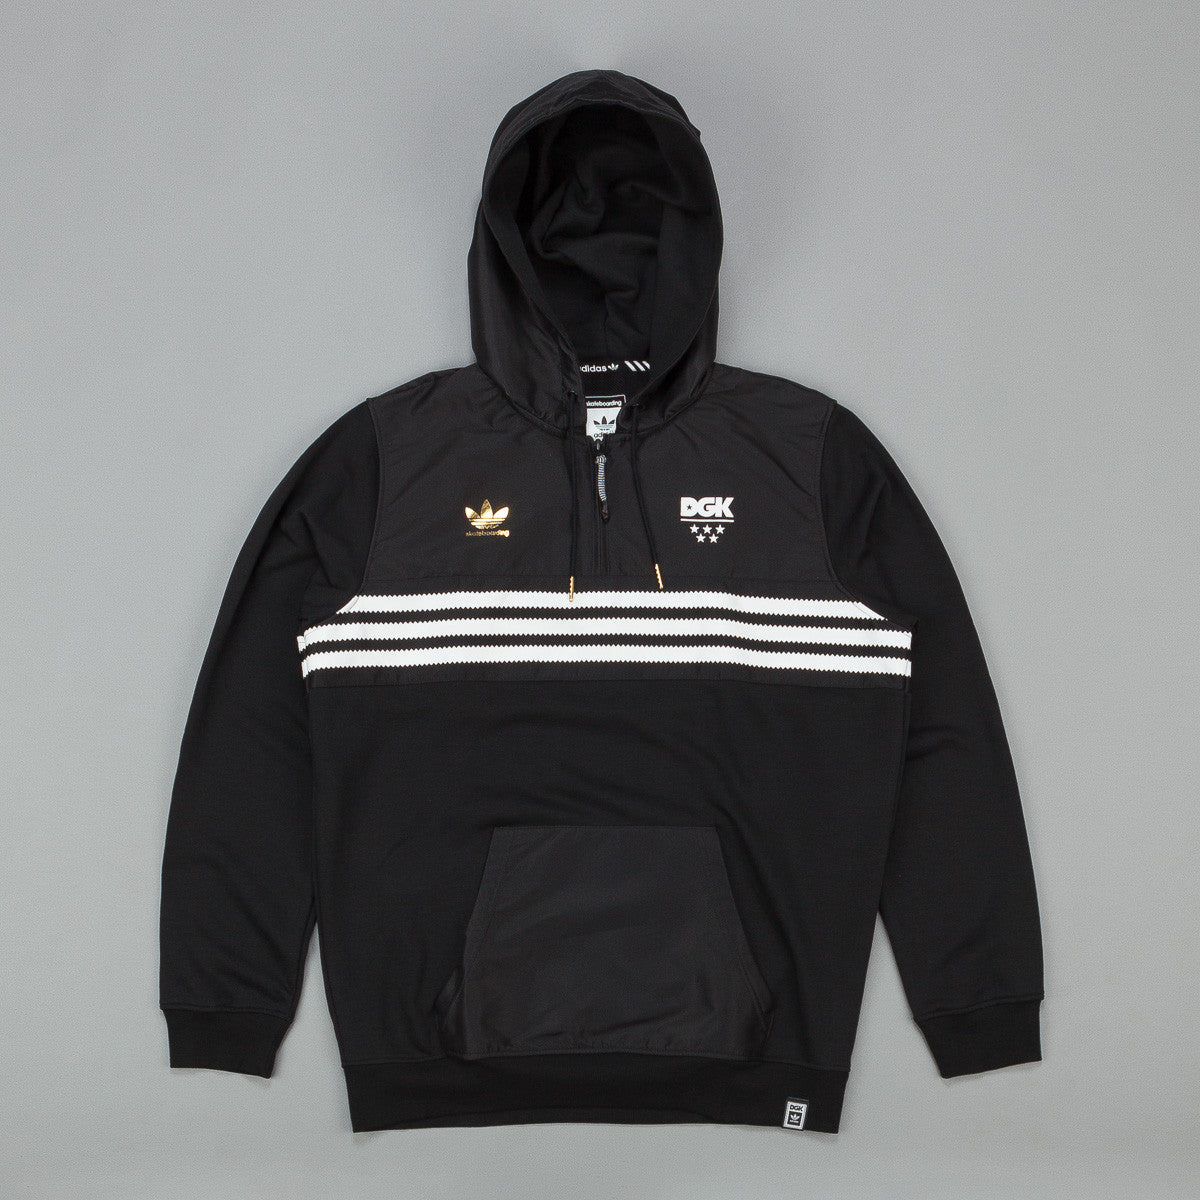 Adidas DGK Hooded Sweatshirt